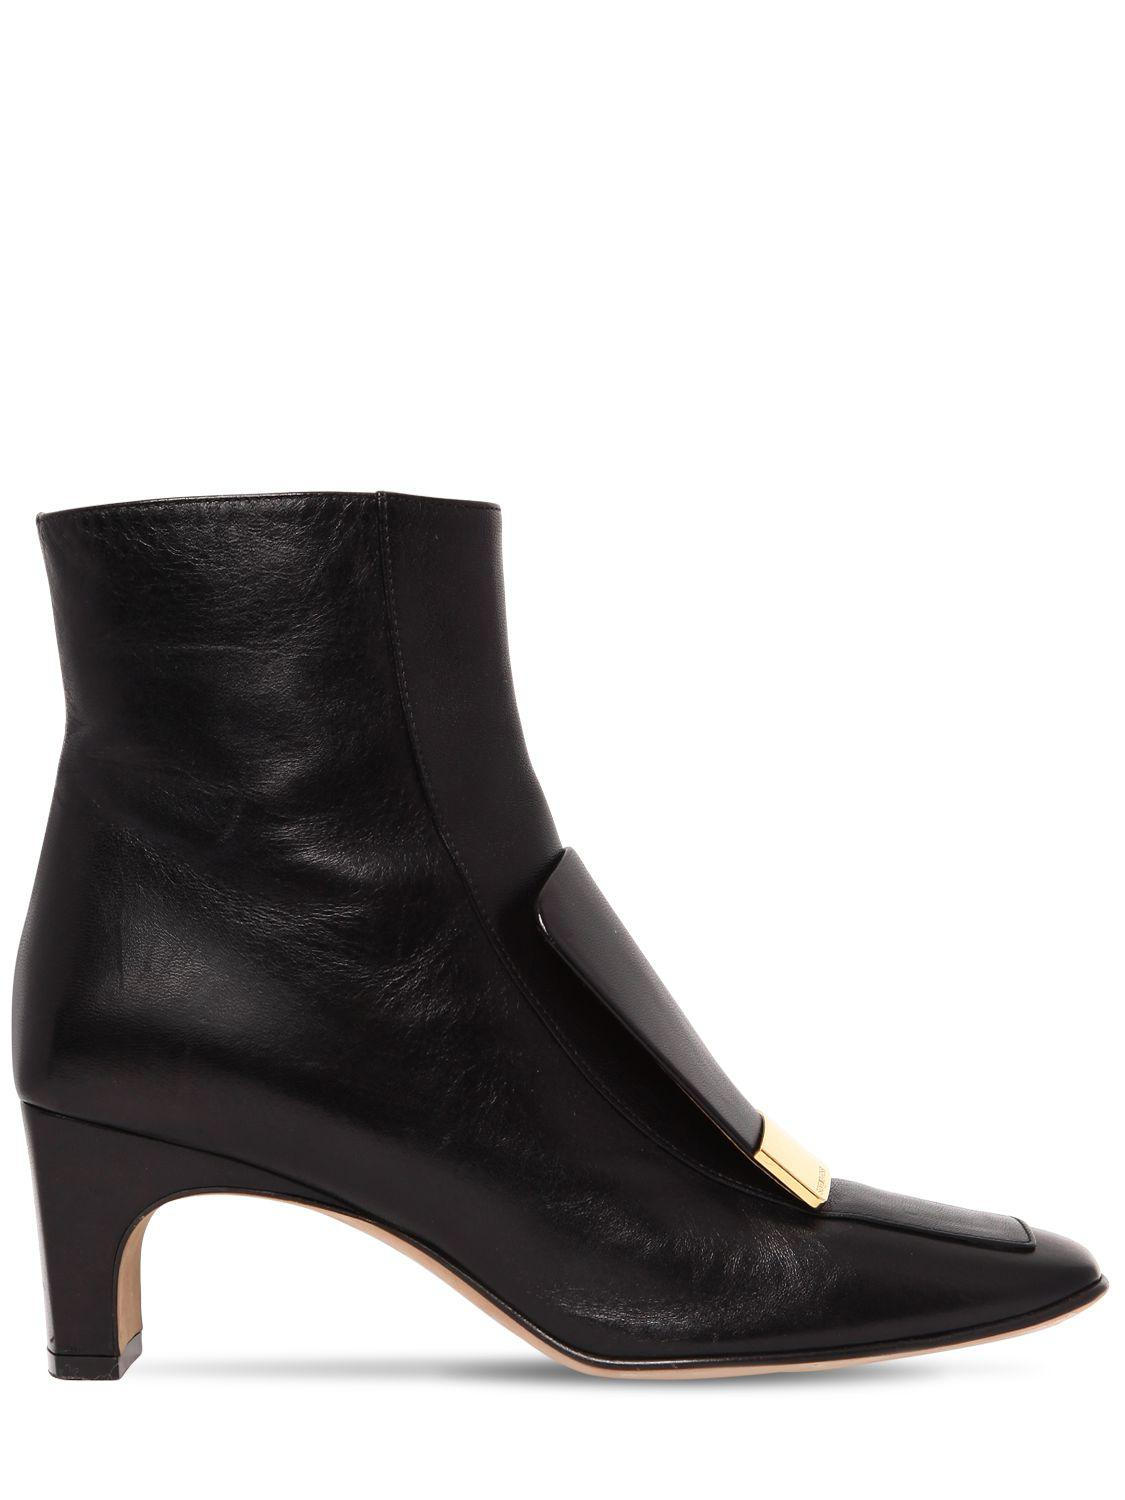 Sergio Rossi 60MM METAL PLAQUE LEATHER ANKLE BOOTS KFUNY